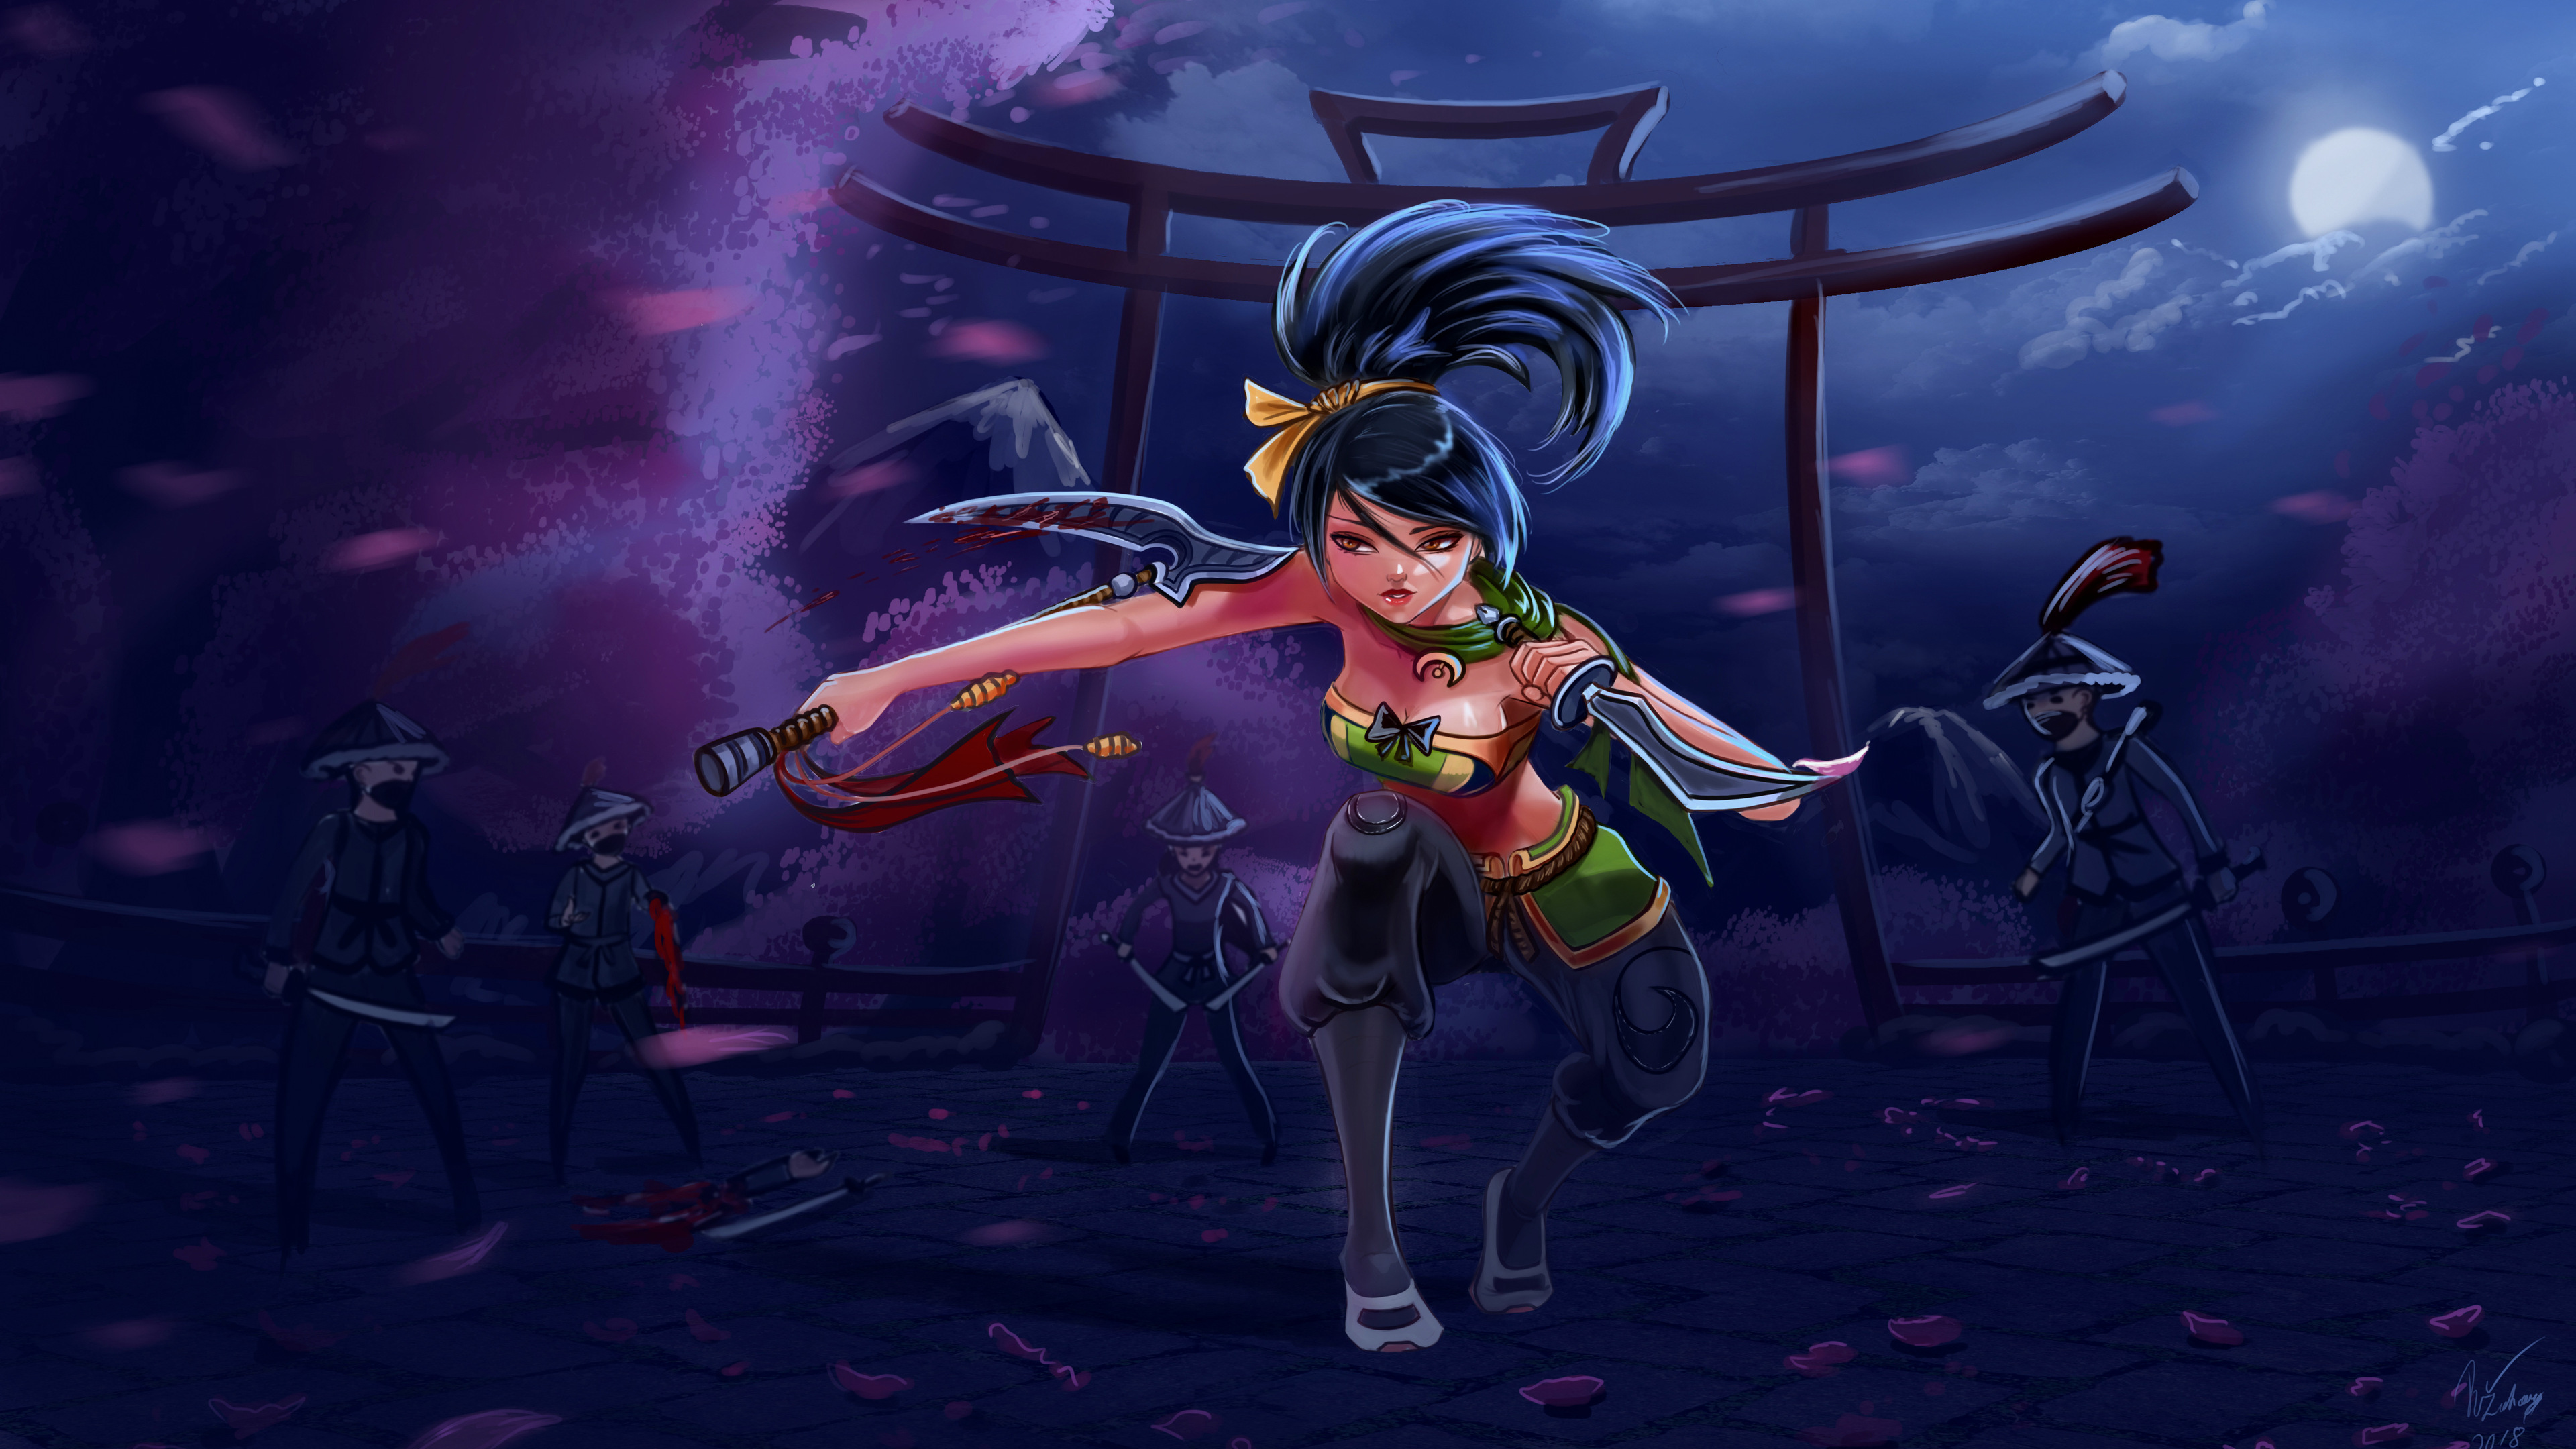 Wallpaper 4k Akali League Of Legends Game 4k Wallpapers Akali